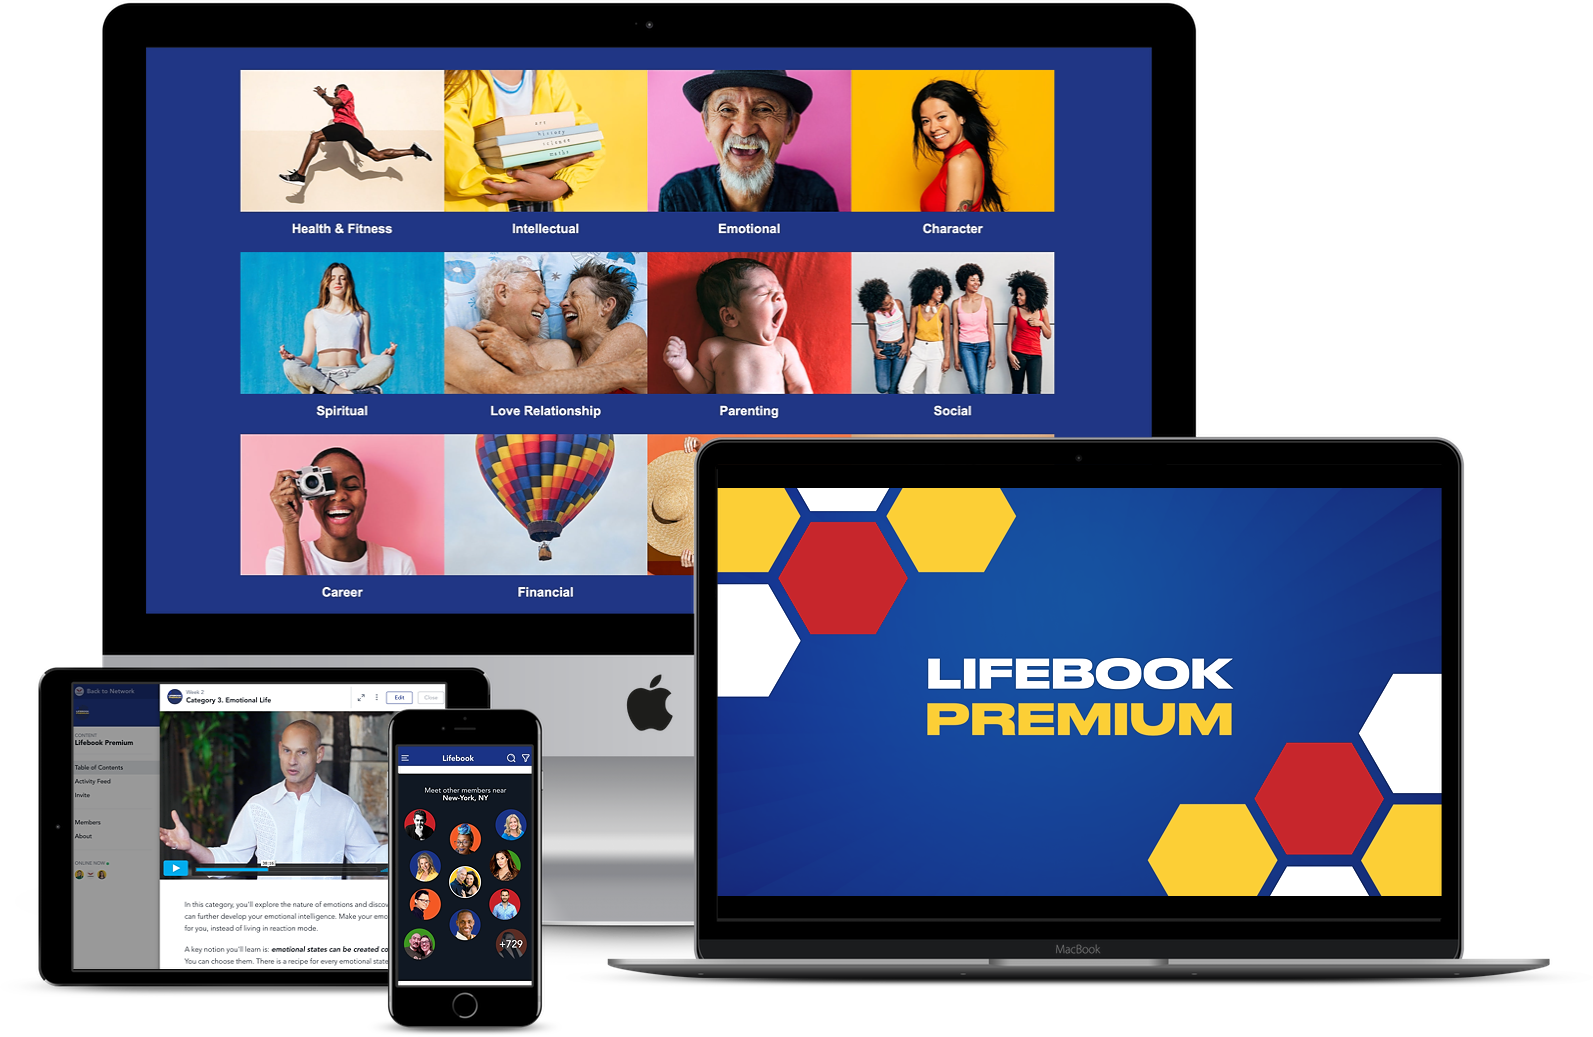 The Lifebook System on all devices